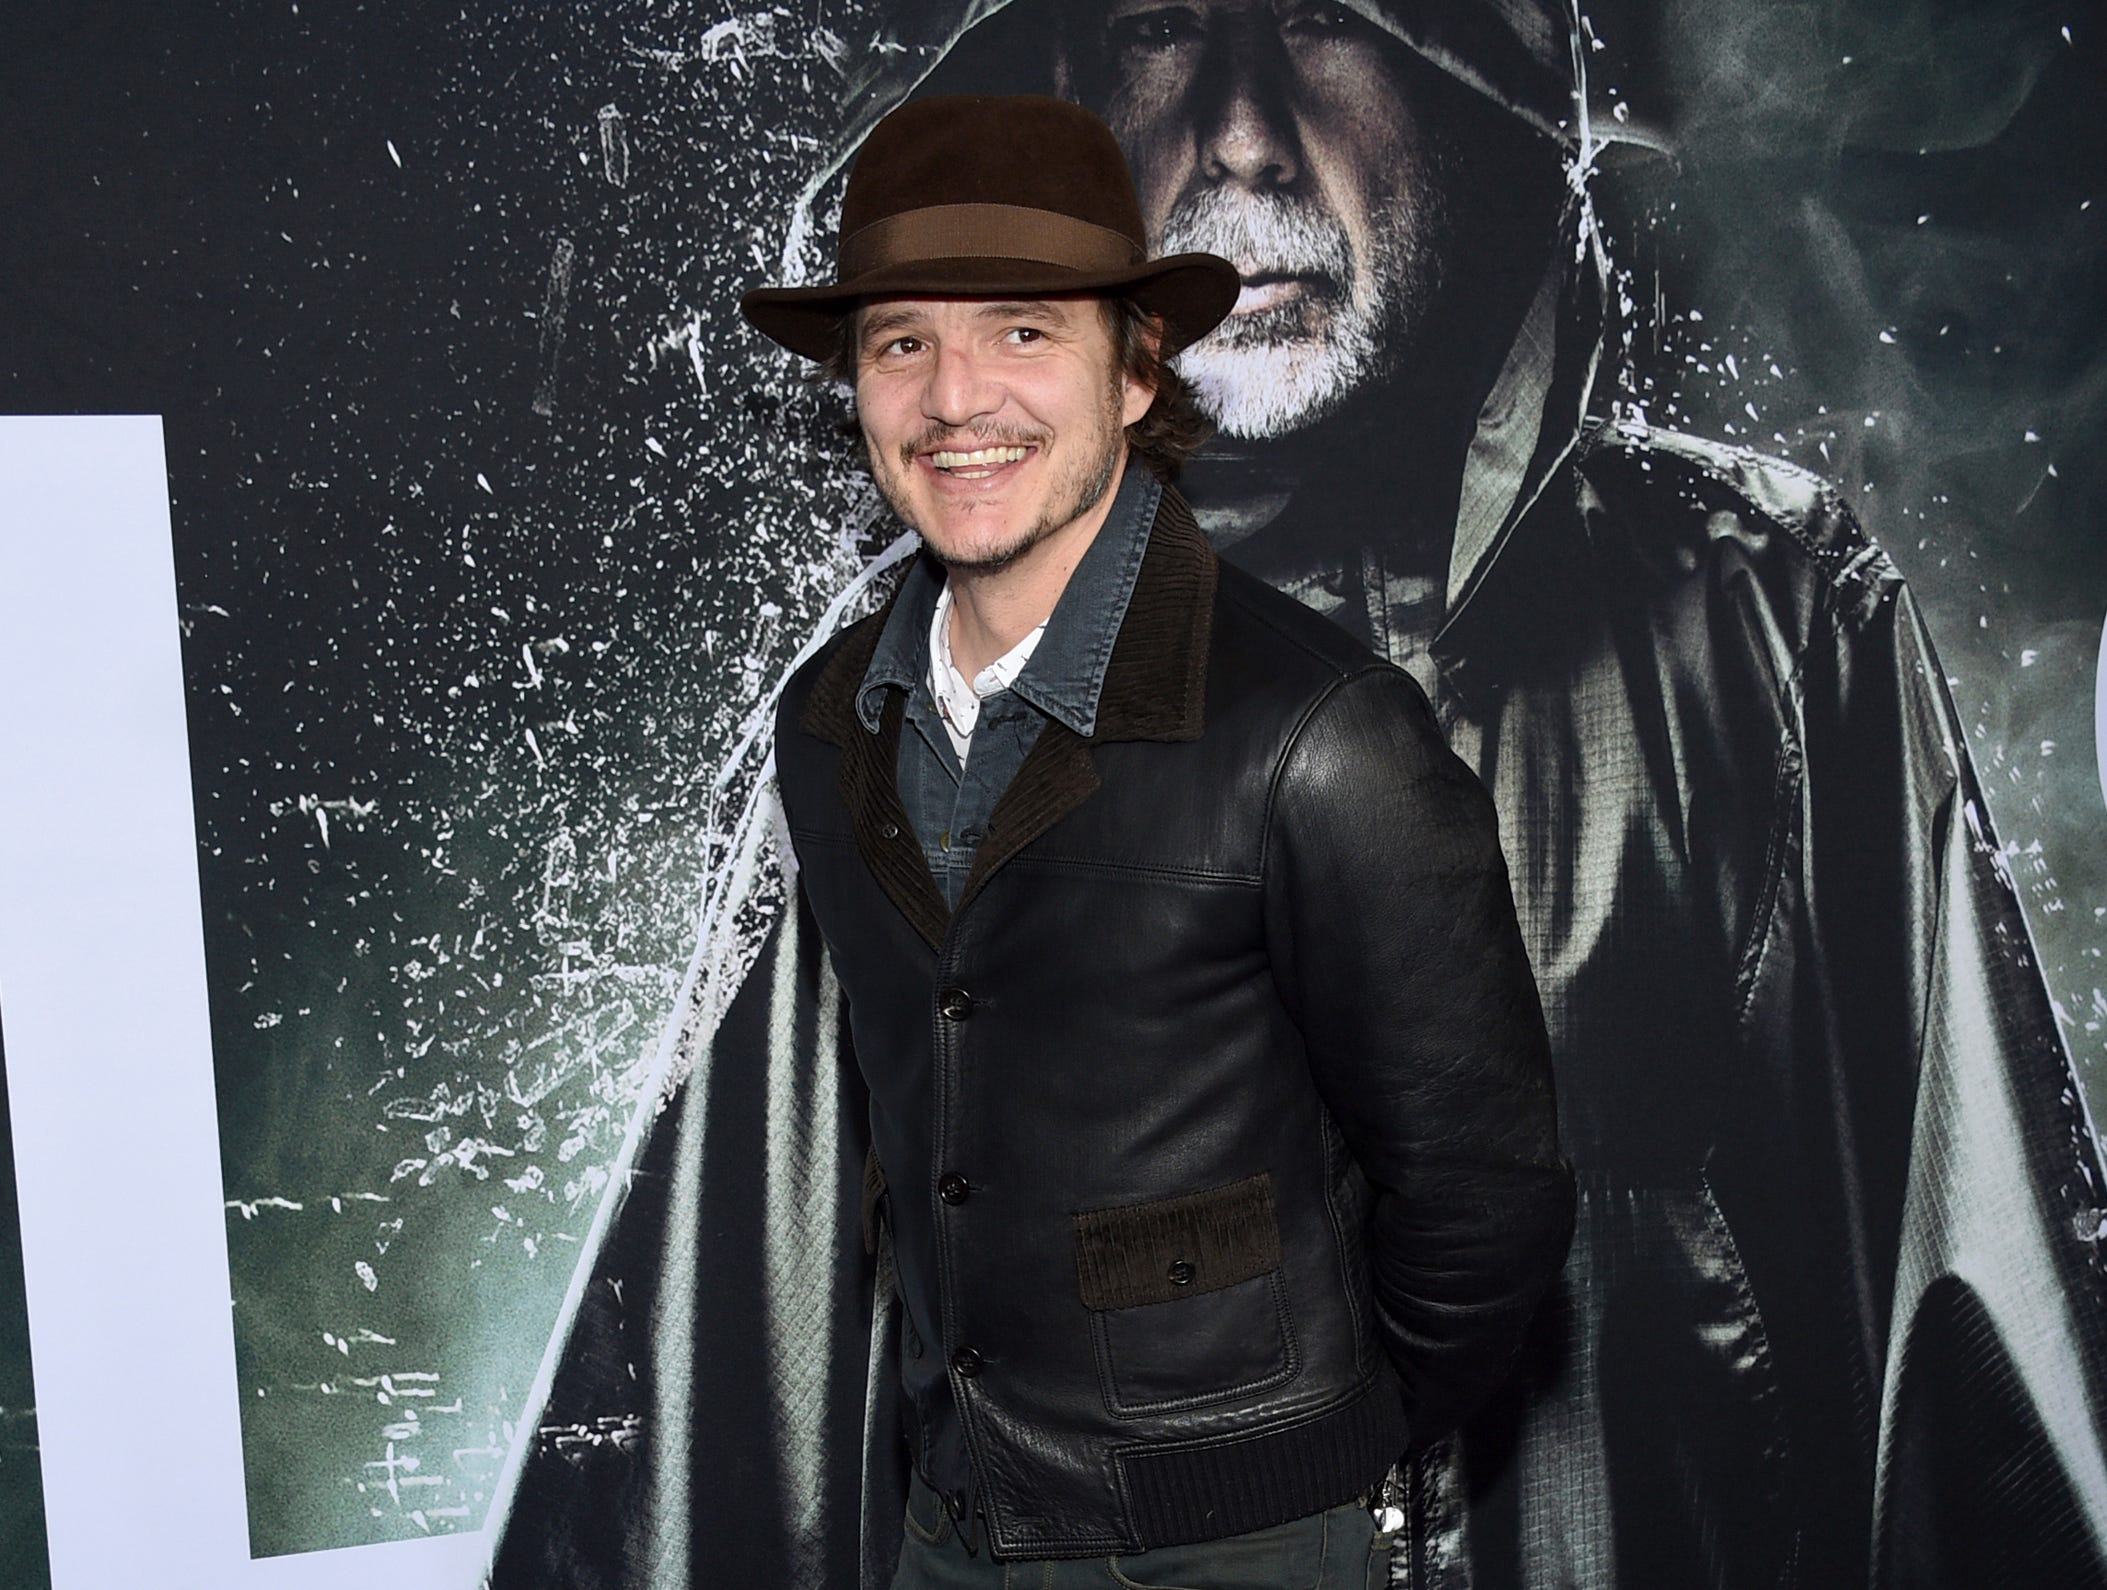 """Pedro Pascal attends the premiere of """"Glass"""" at the SVA Theatre on Tuesday, Jan. 15, 2019, in New York."""